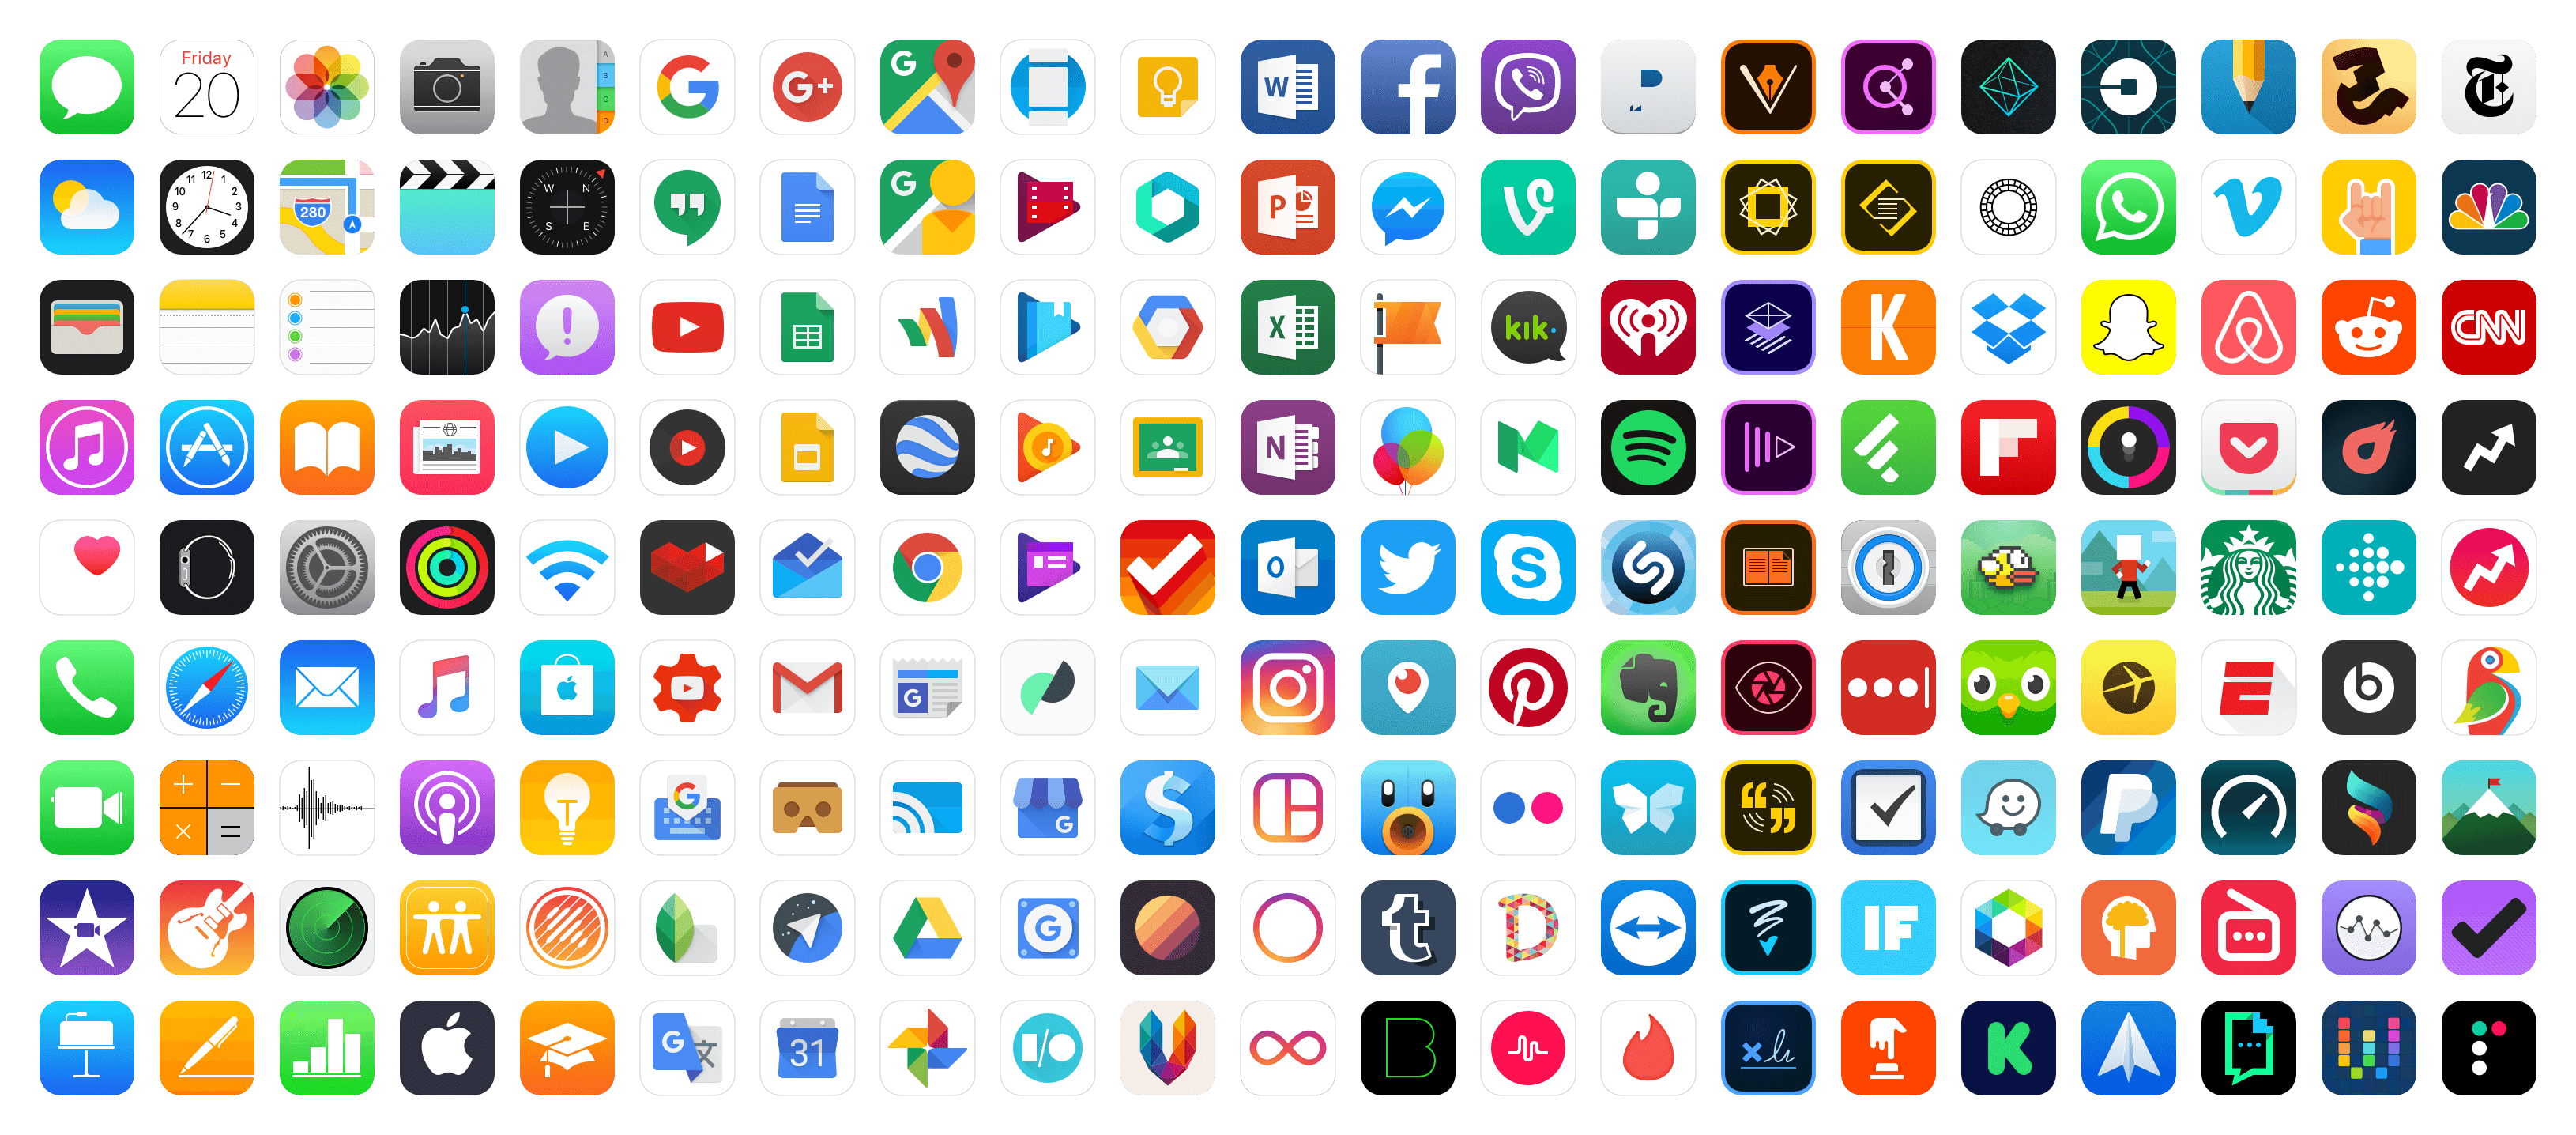 image of multiple iphone applications